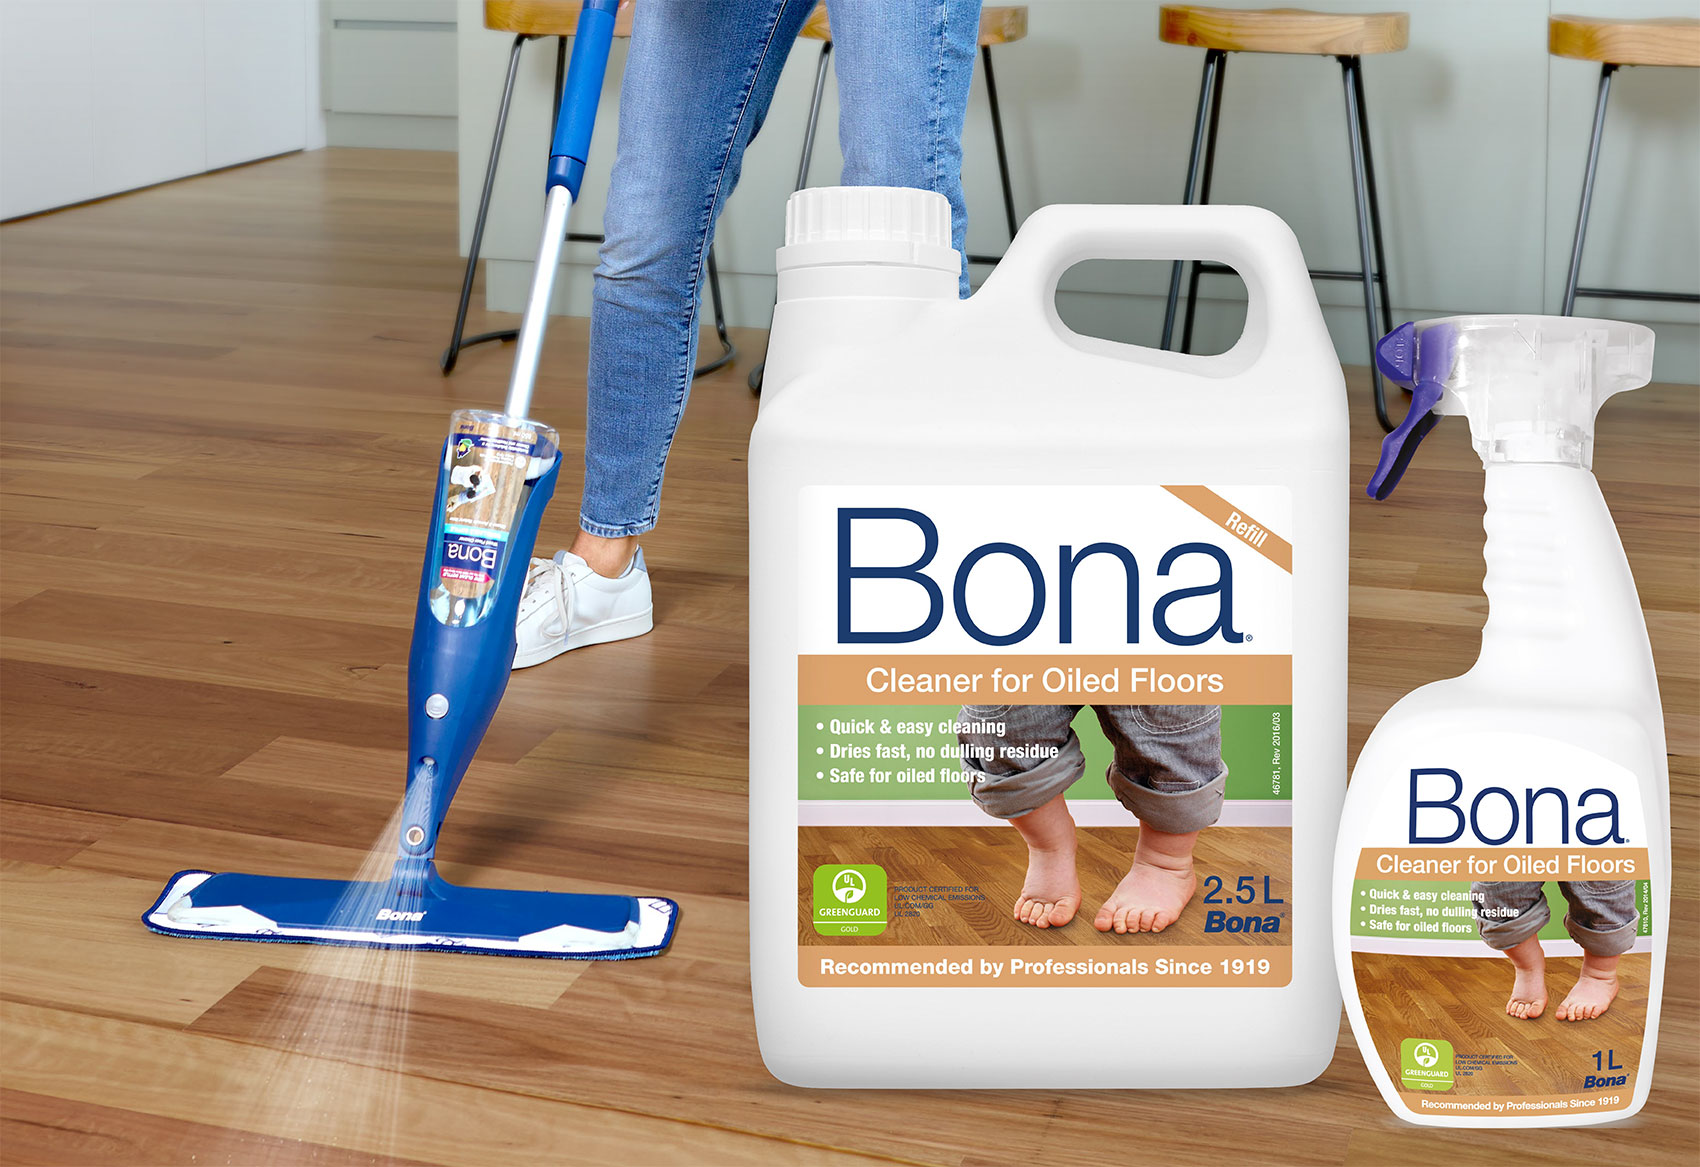 Bona Oiled Floors Cleaner & Refresher maintains and protects